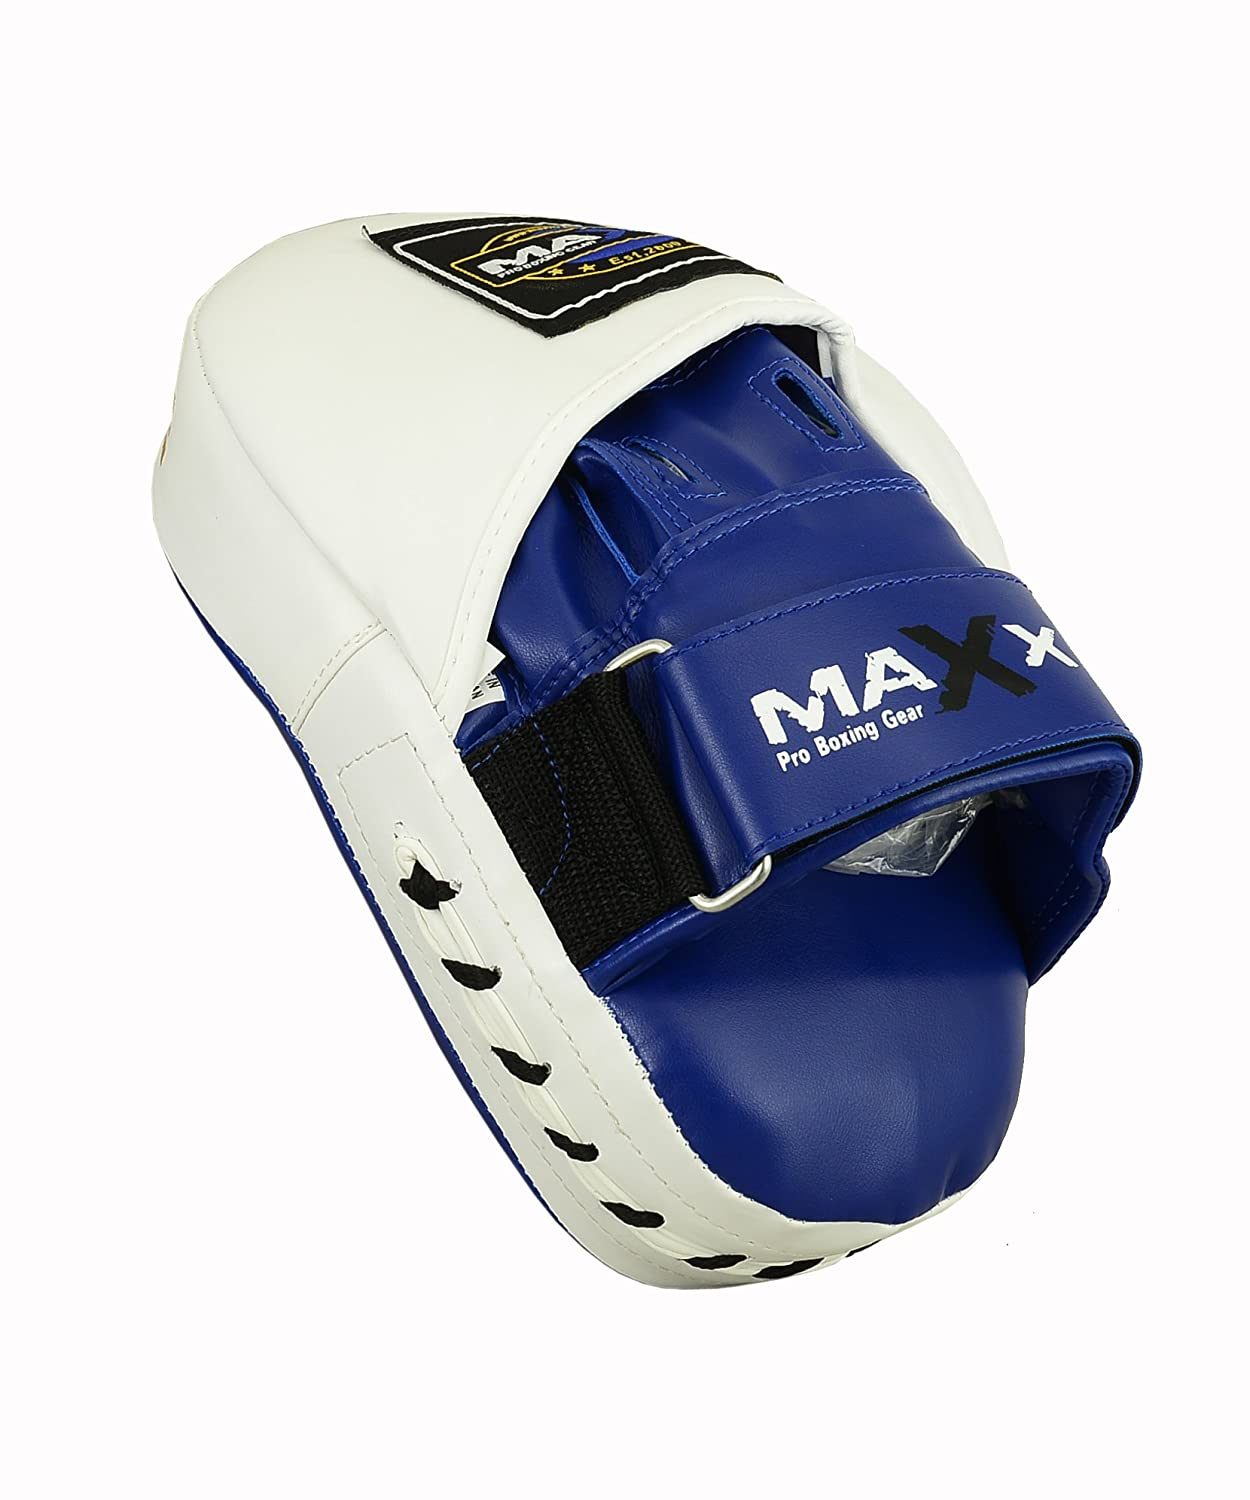 Maxx Rex Leather Curved Focus Pads MMA Boxing PINK Black White Red Blue Martial ART Kick Boxing